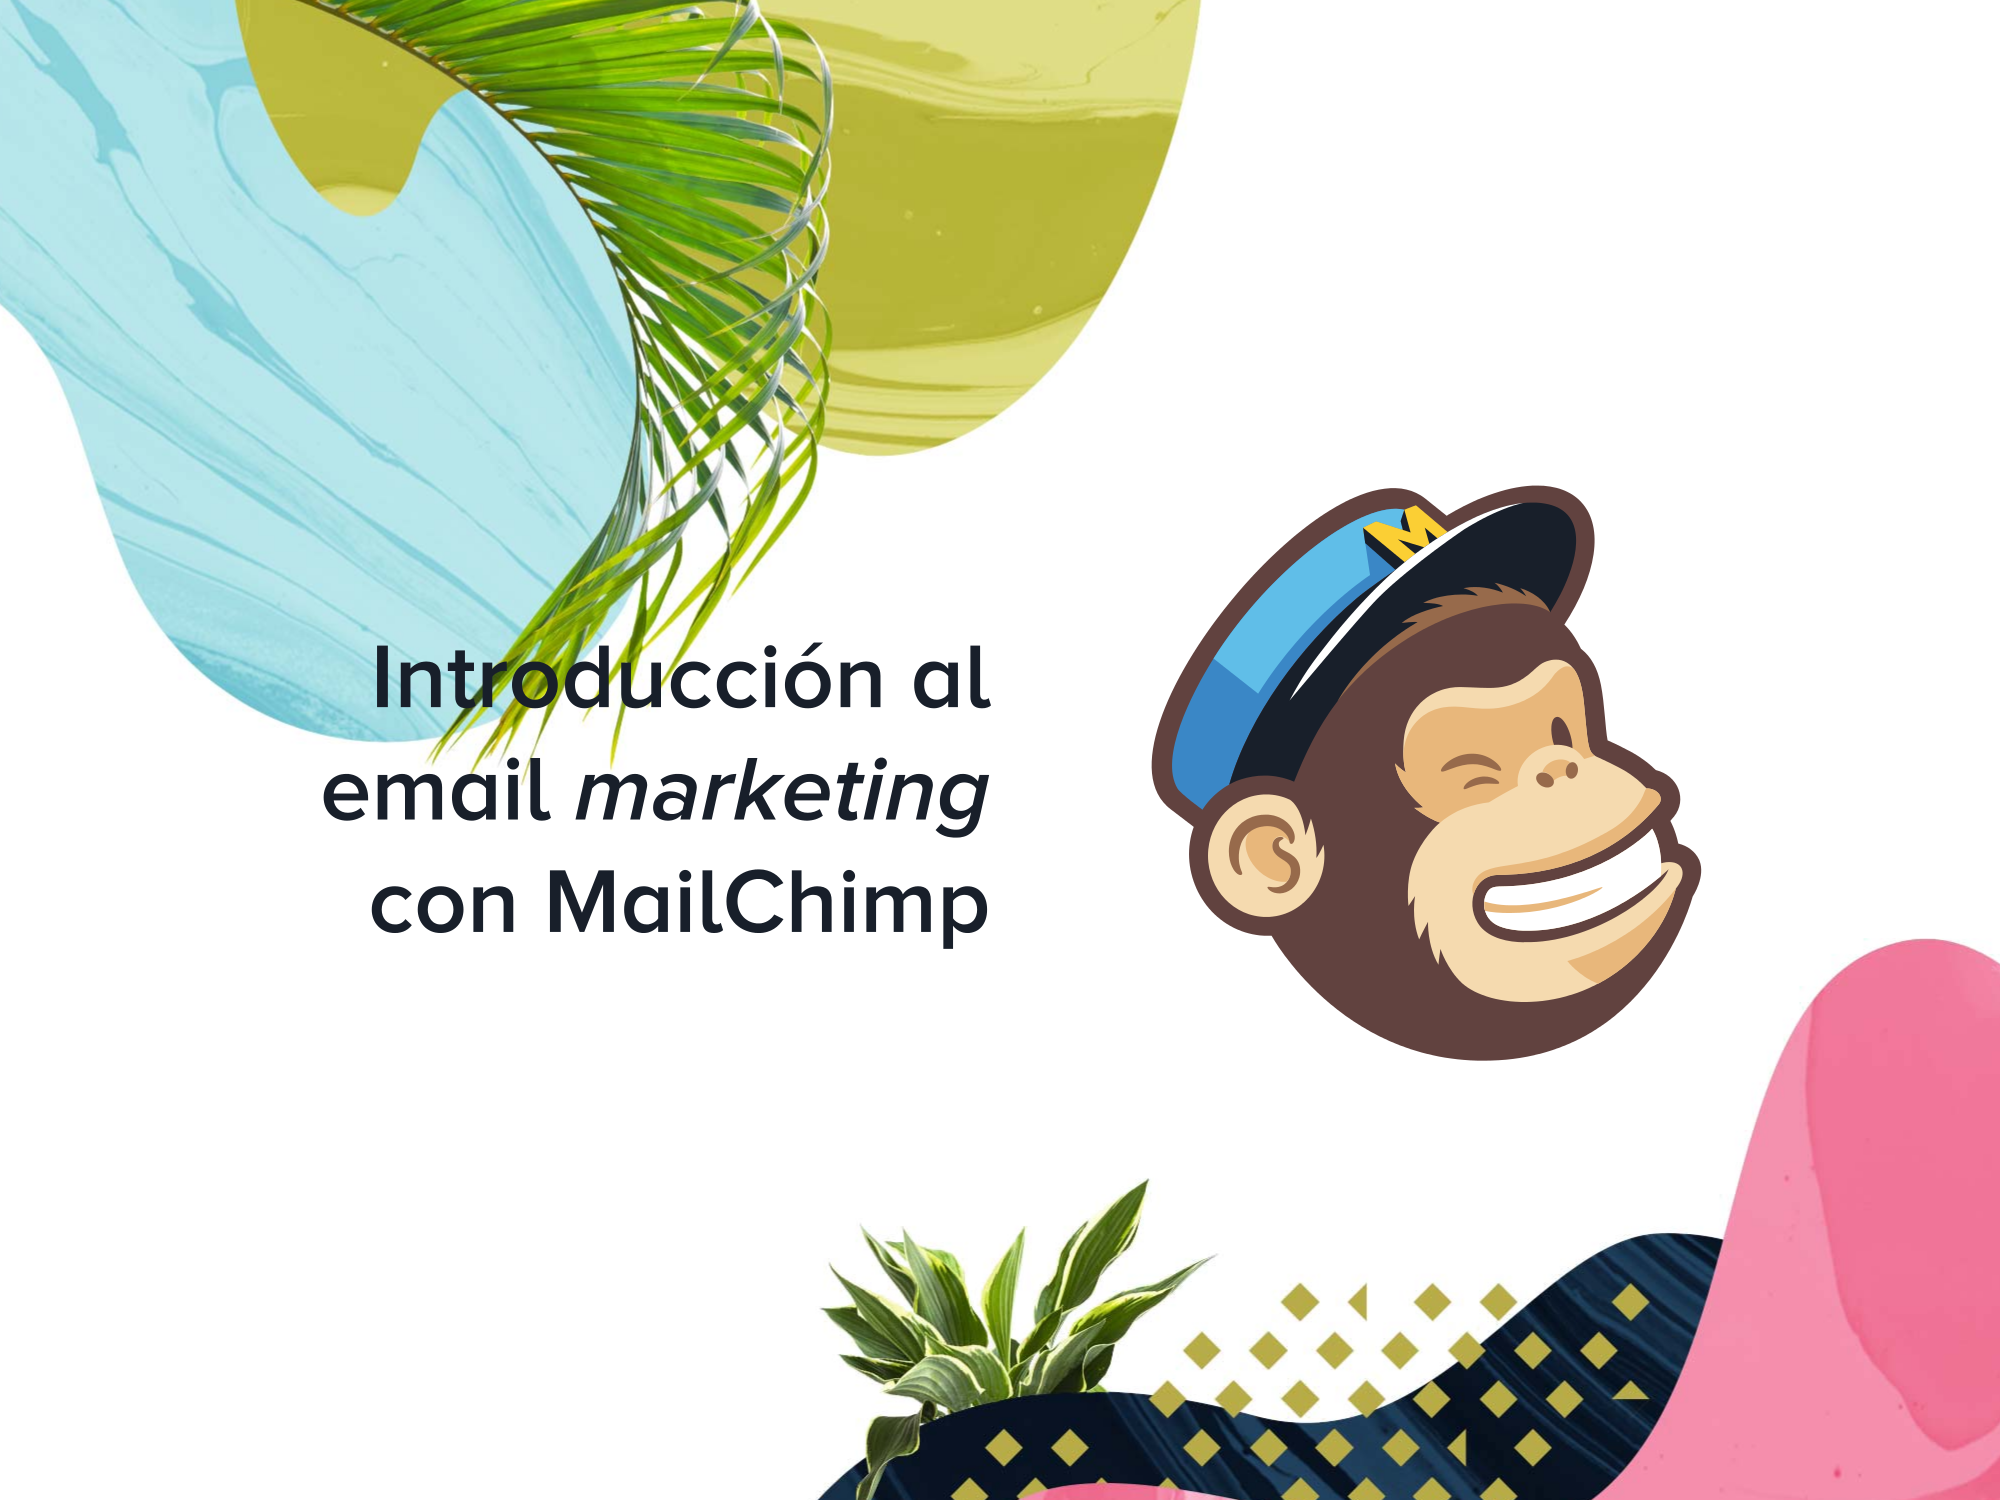 Introducción al email marketing con MailChimp